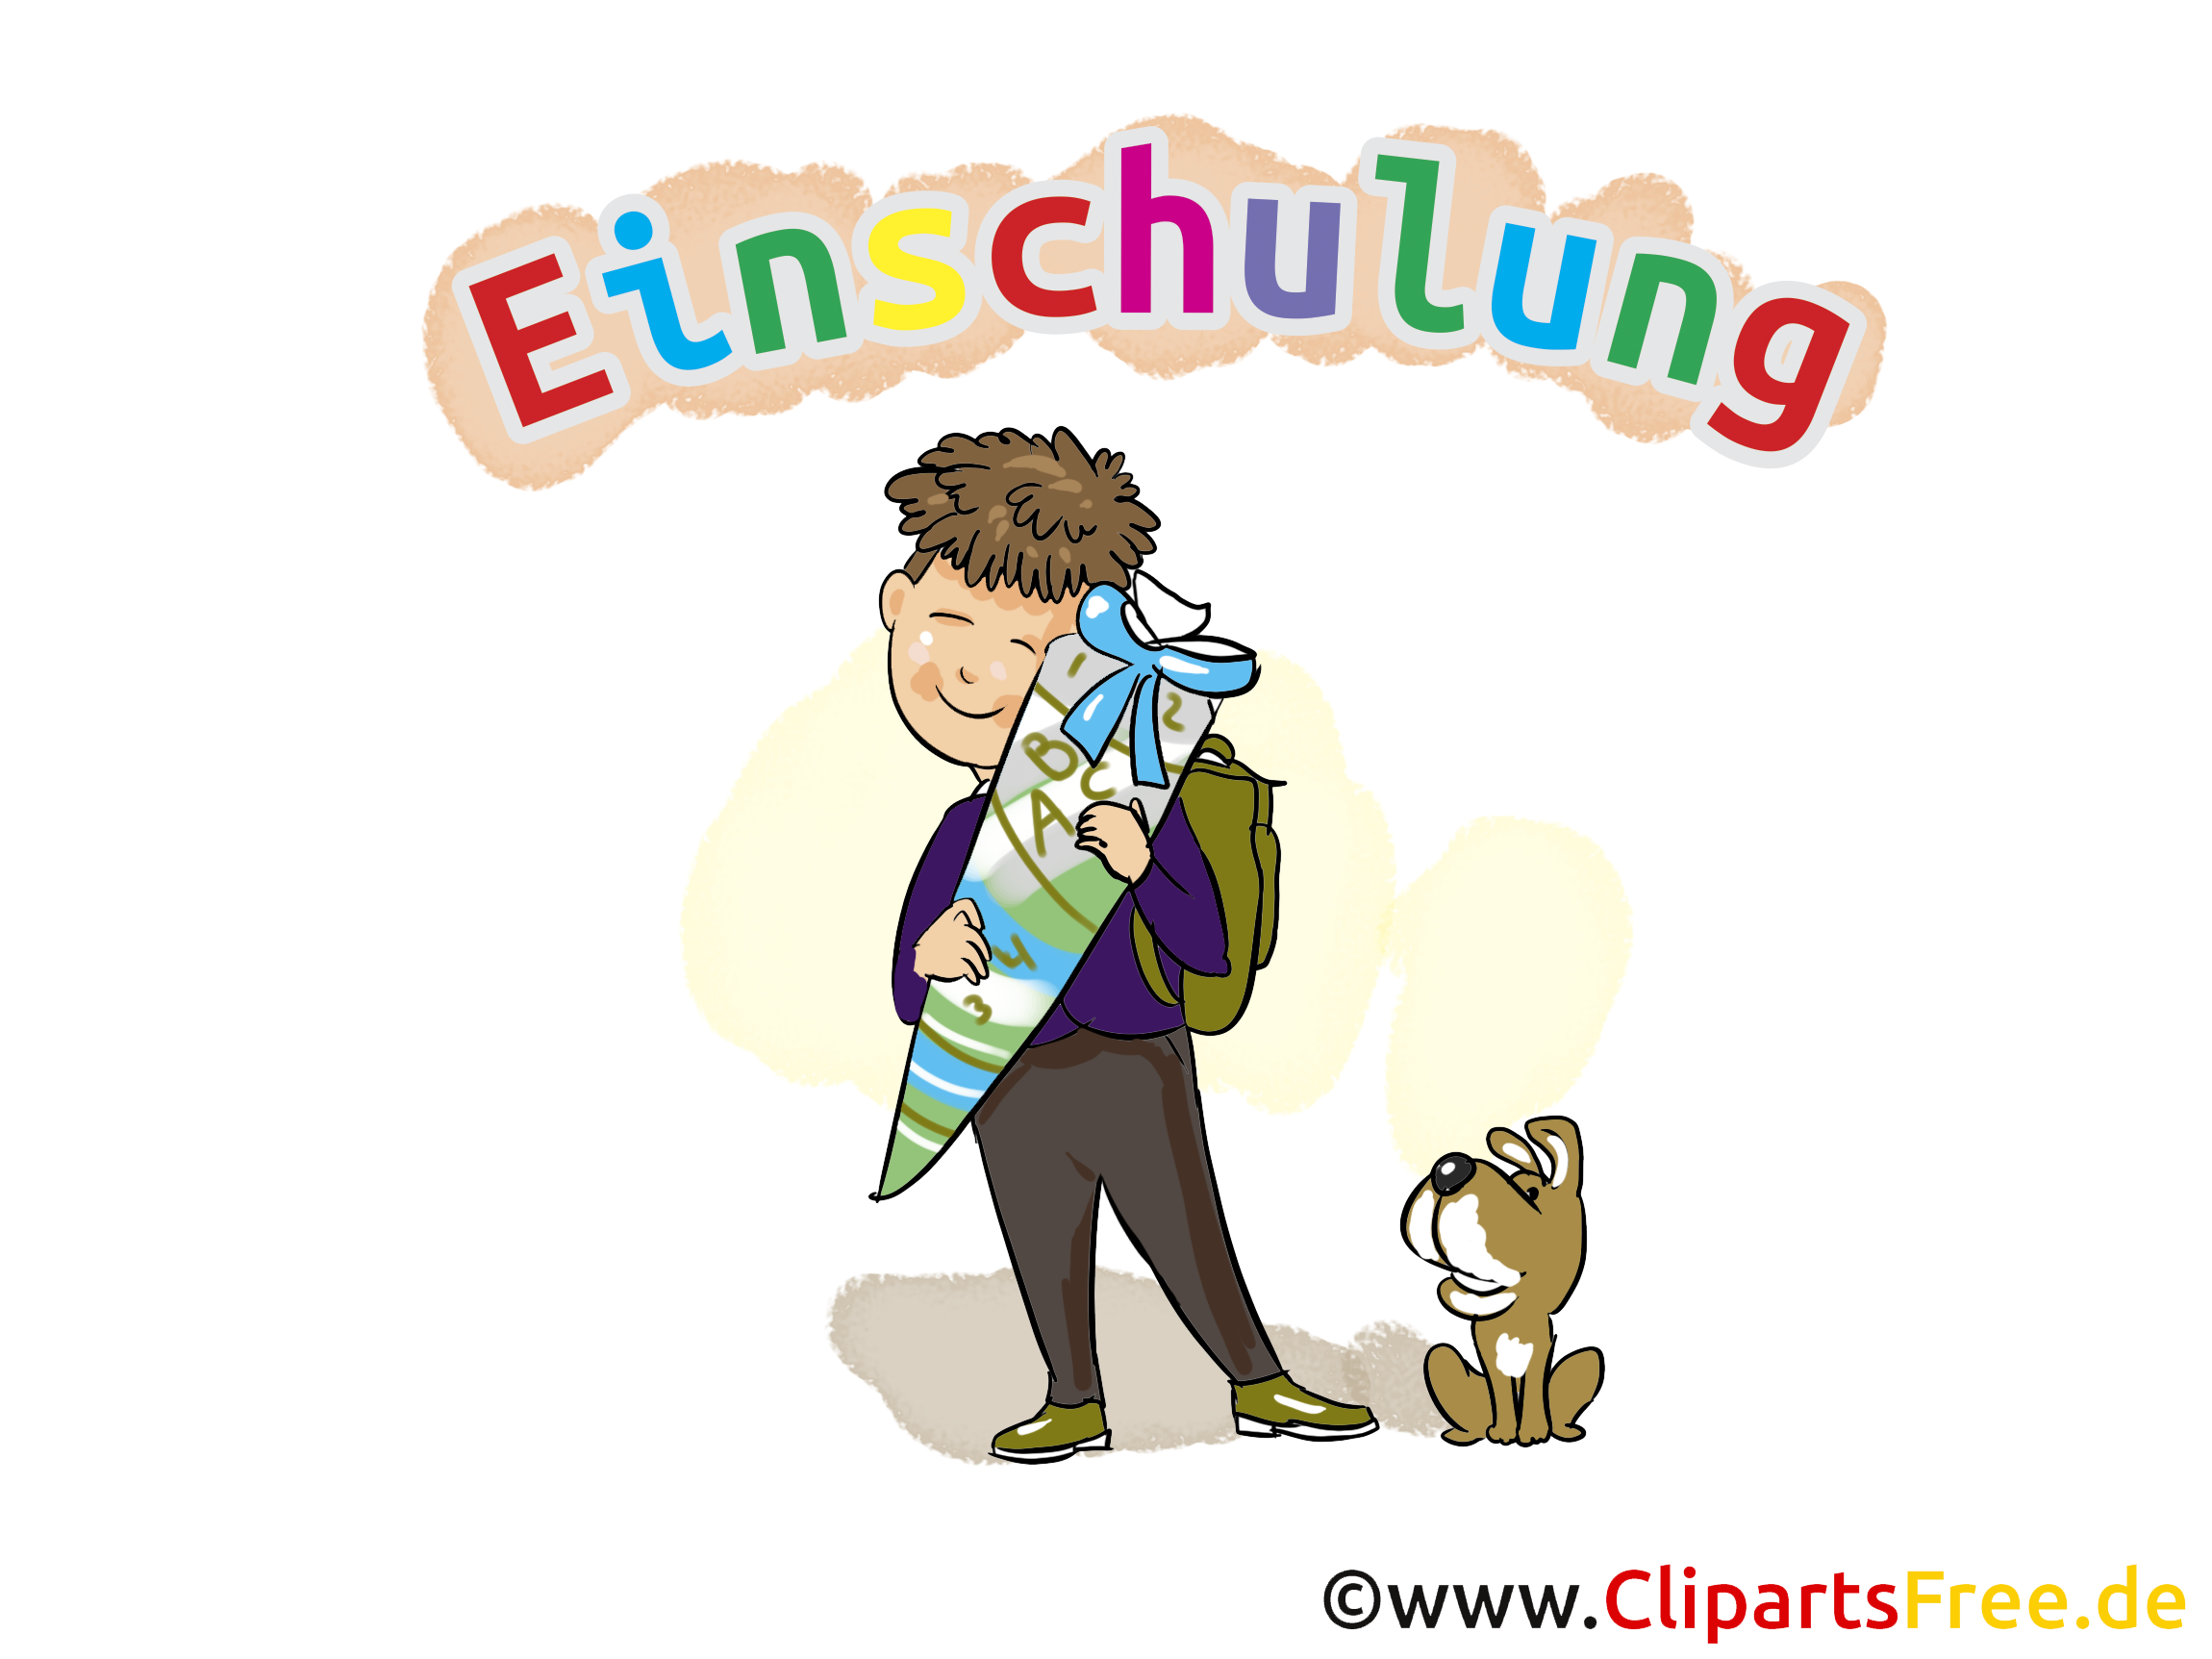 Einschulung Bilder, Cliparts, Cartoons, Grafiken, Illustrationen.